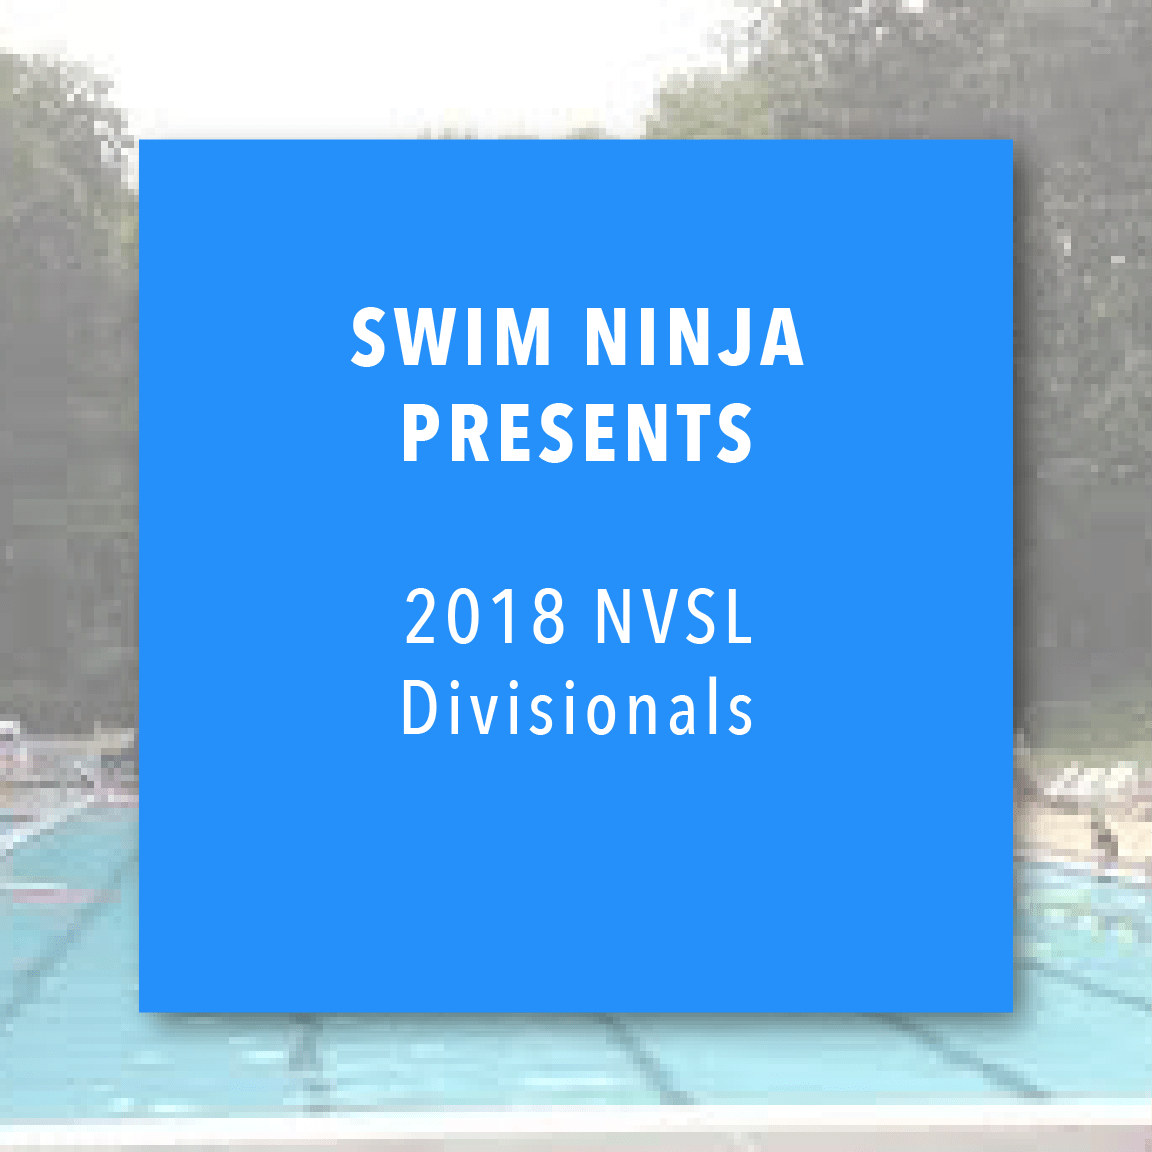 2018 Divisionals: Division 5 Back